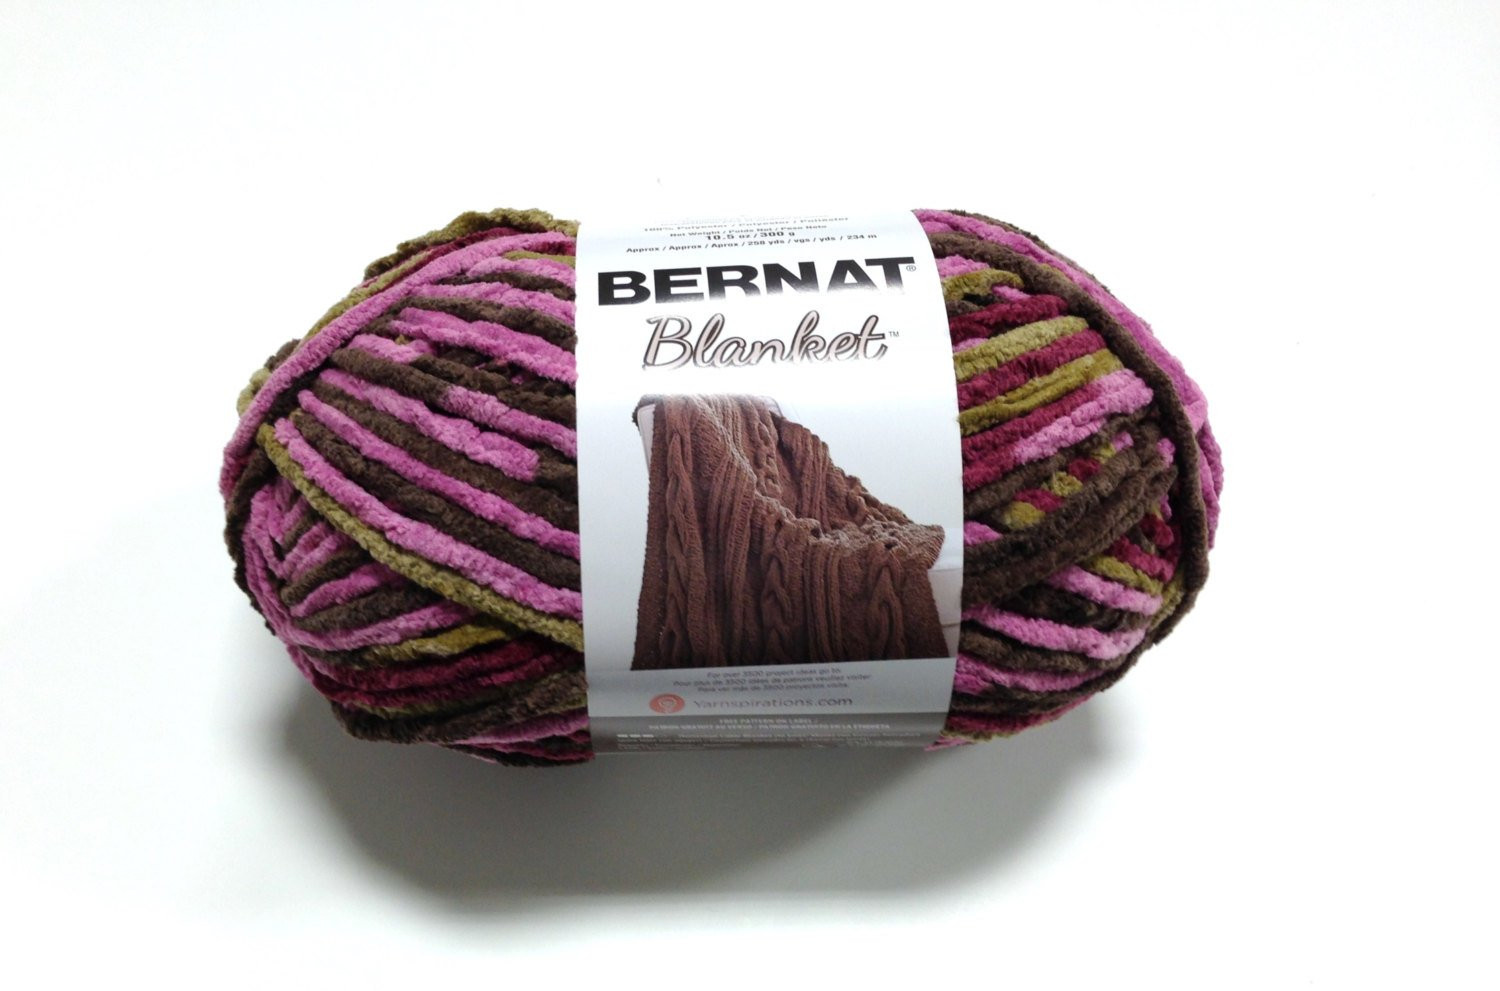 Bernat Blanket Yarn Awesome Bernat Big Blanket Yarn Plum Chutney Skein 300 Grams New Of Beautiful 42 Models Bernat Blanket Yarn